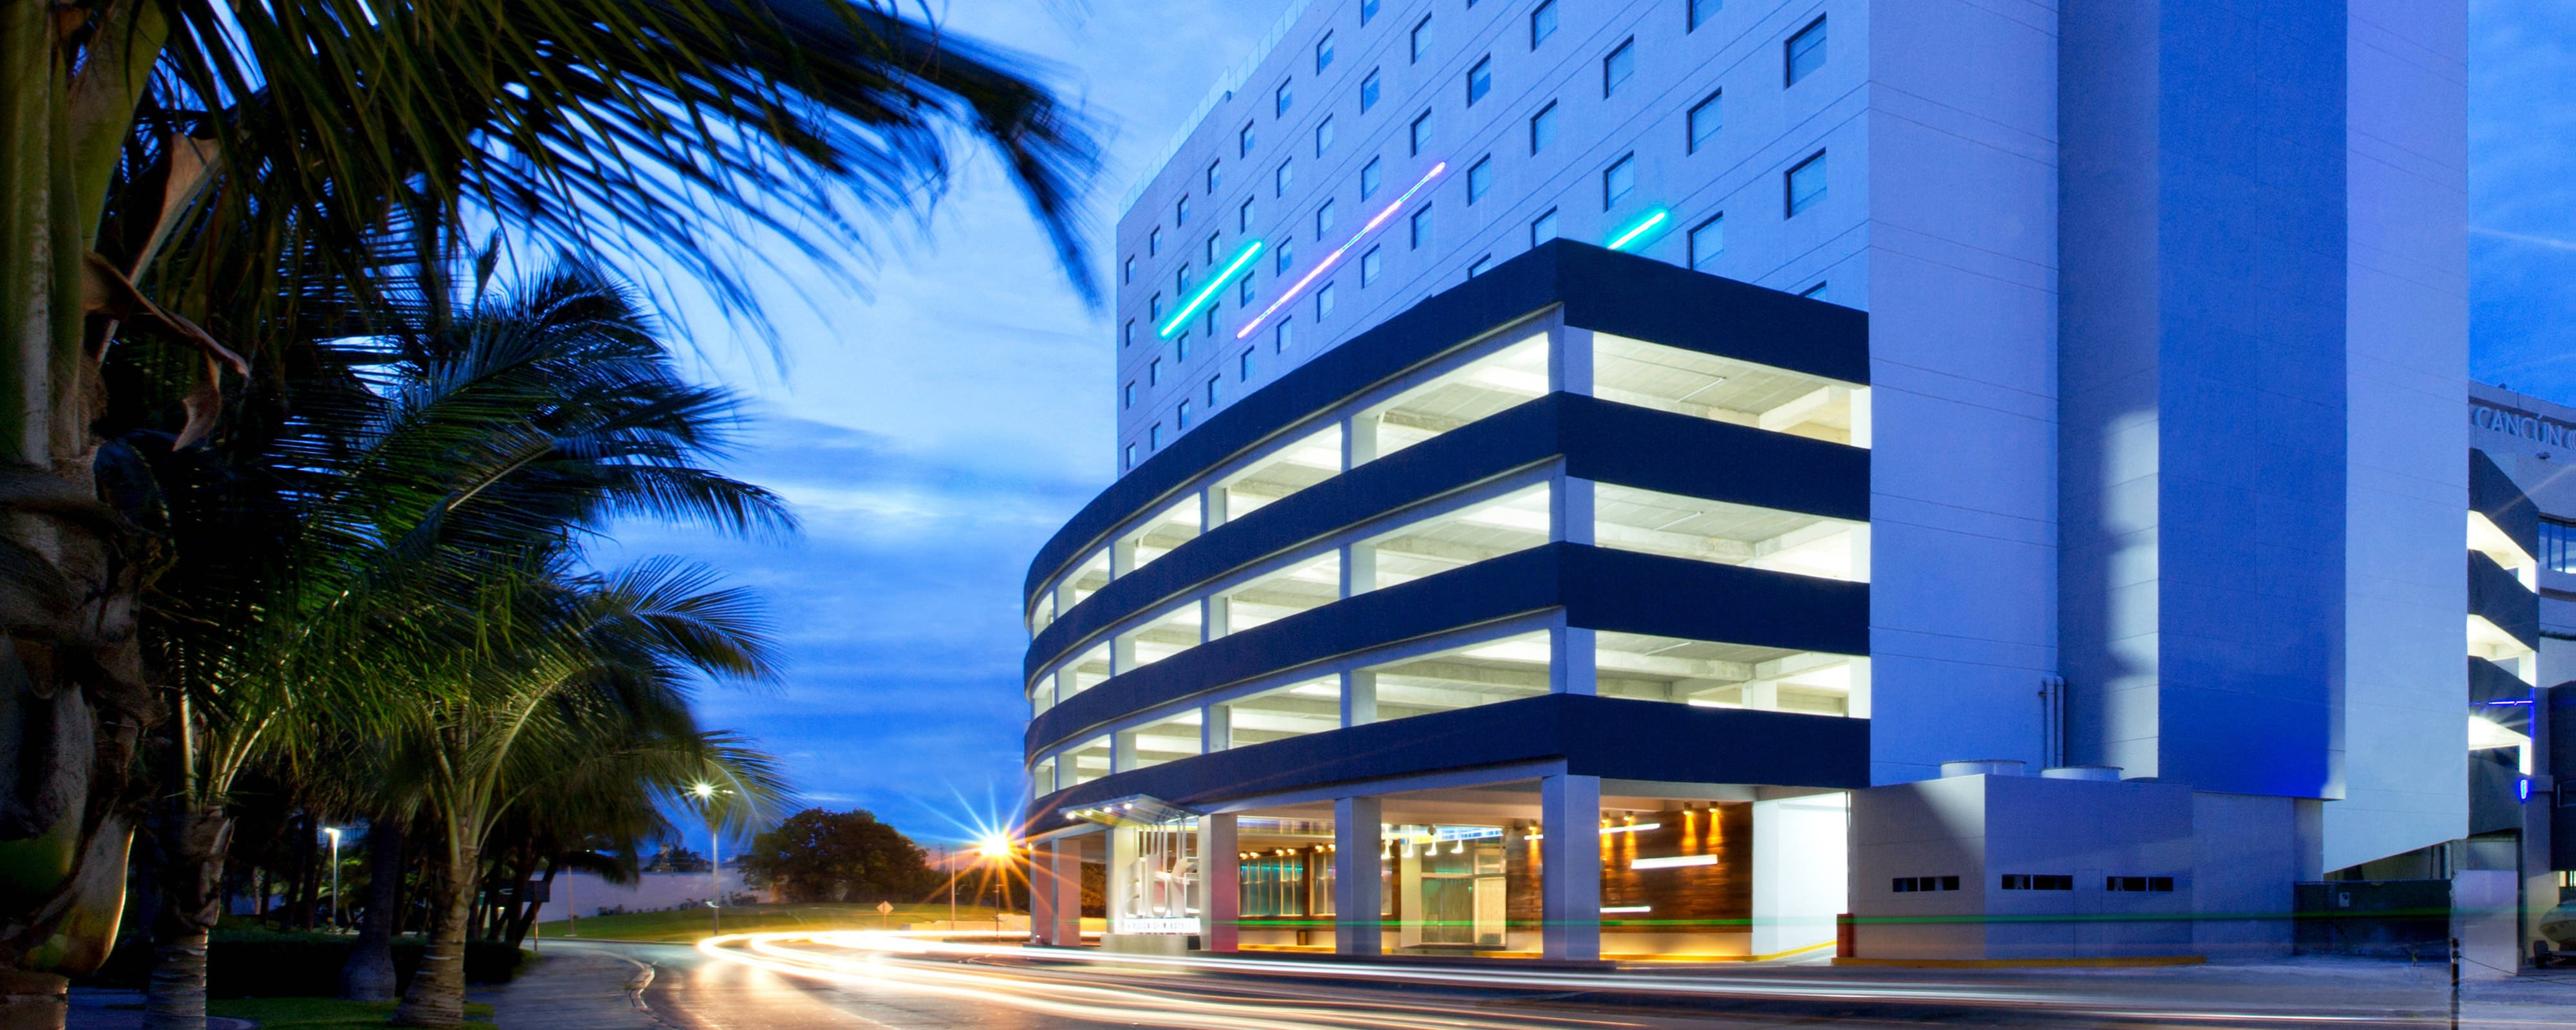 Aloft Cancun Cancun Spg